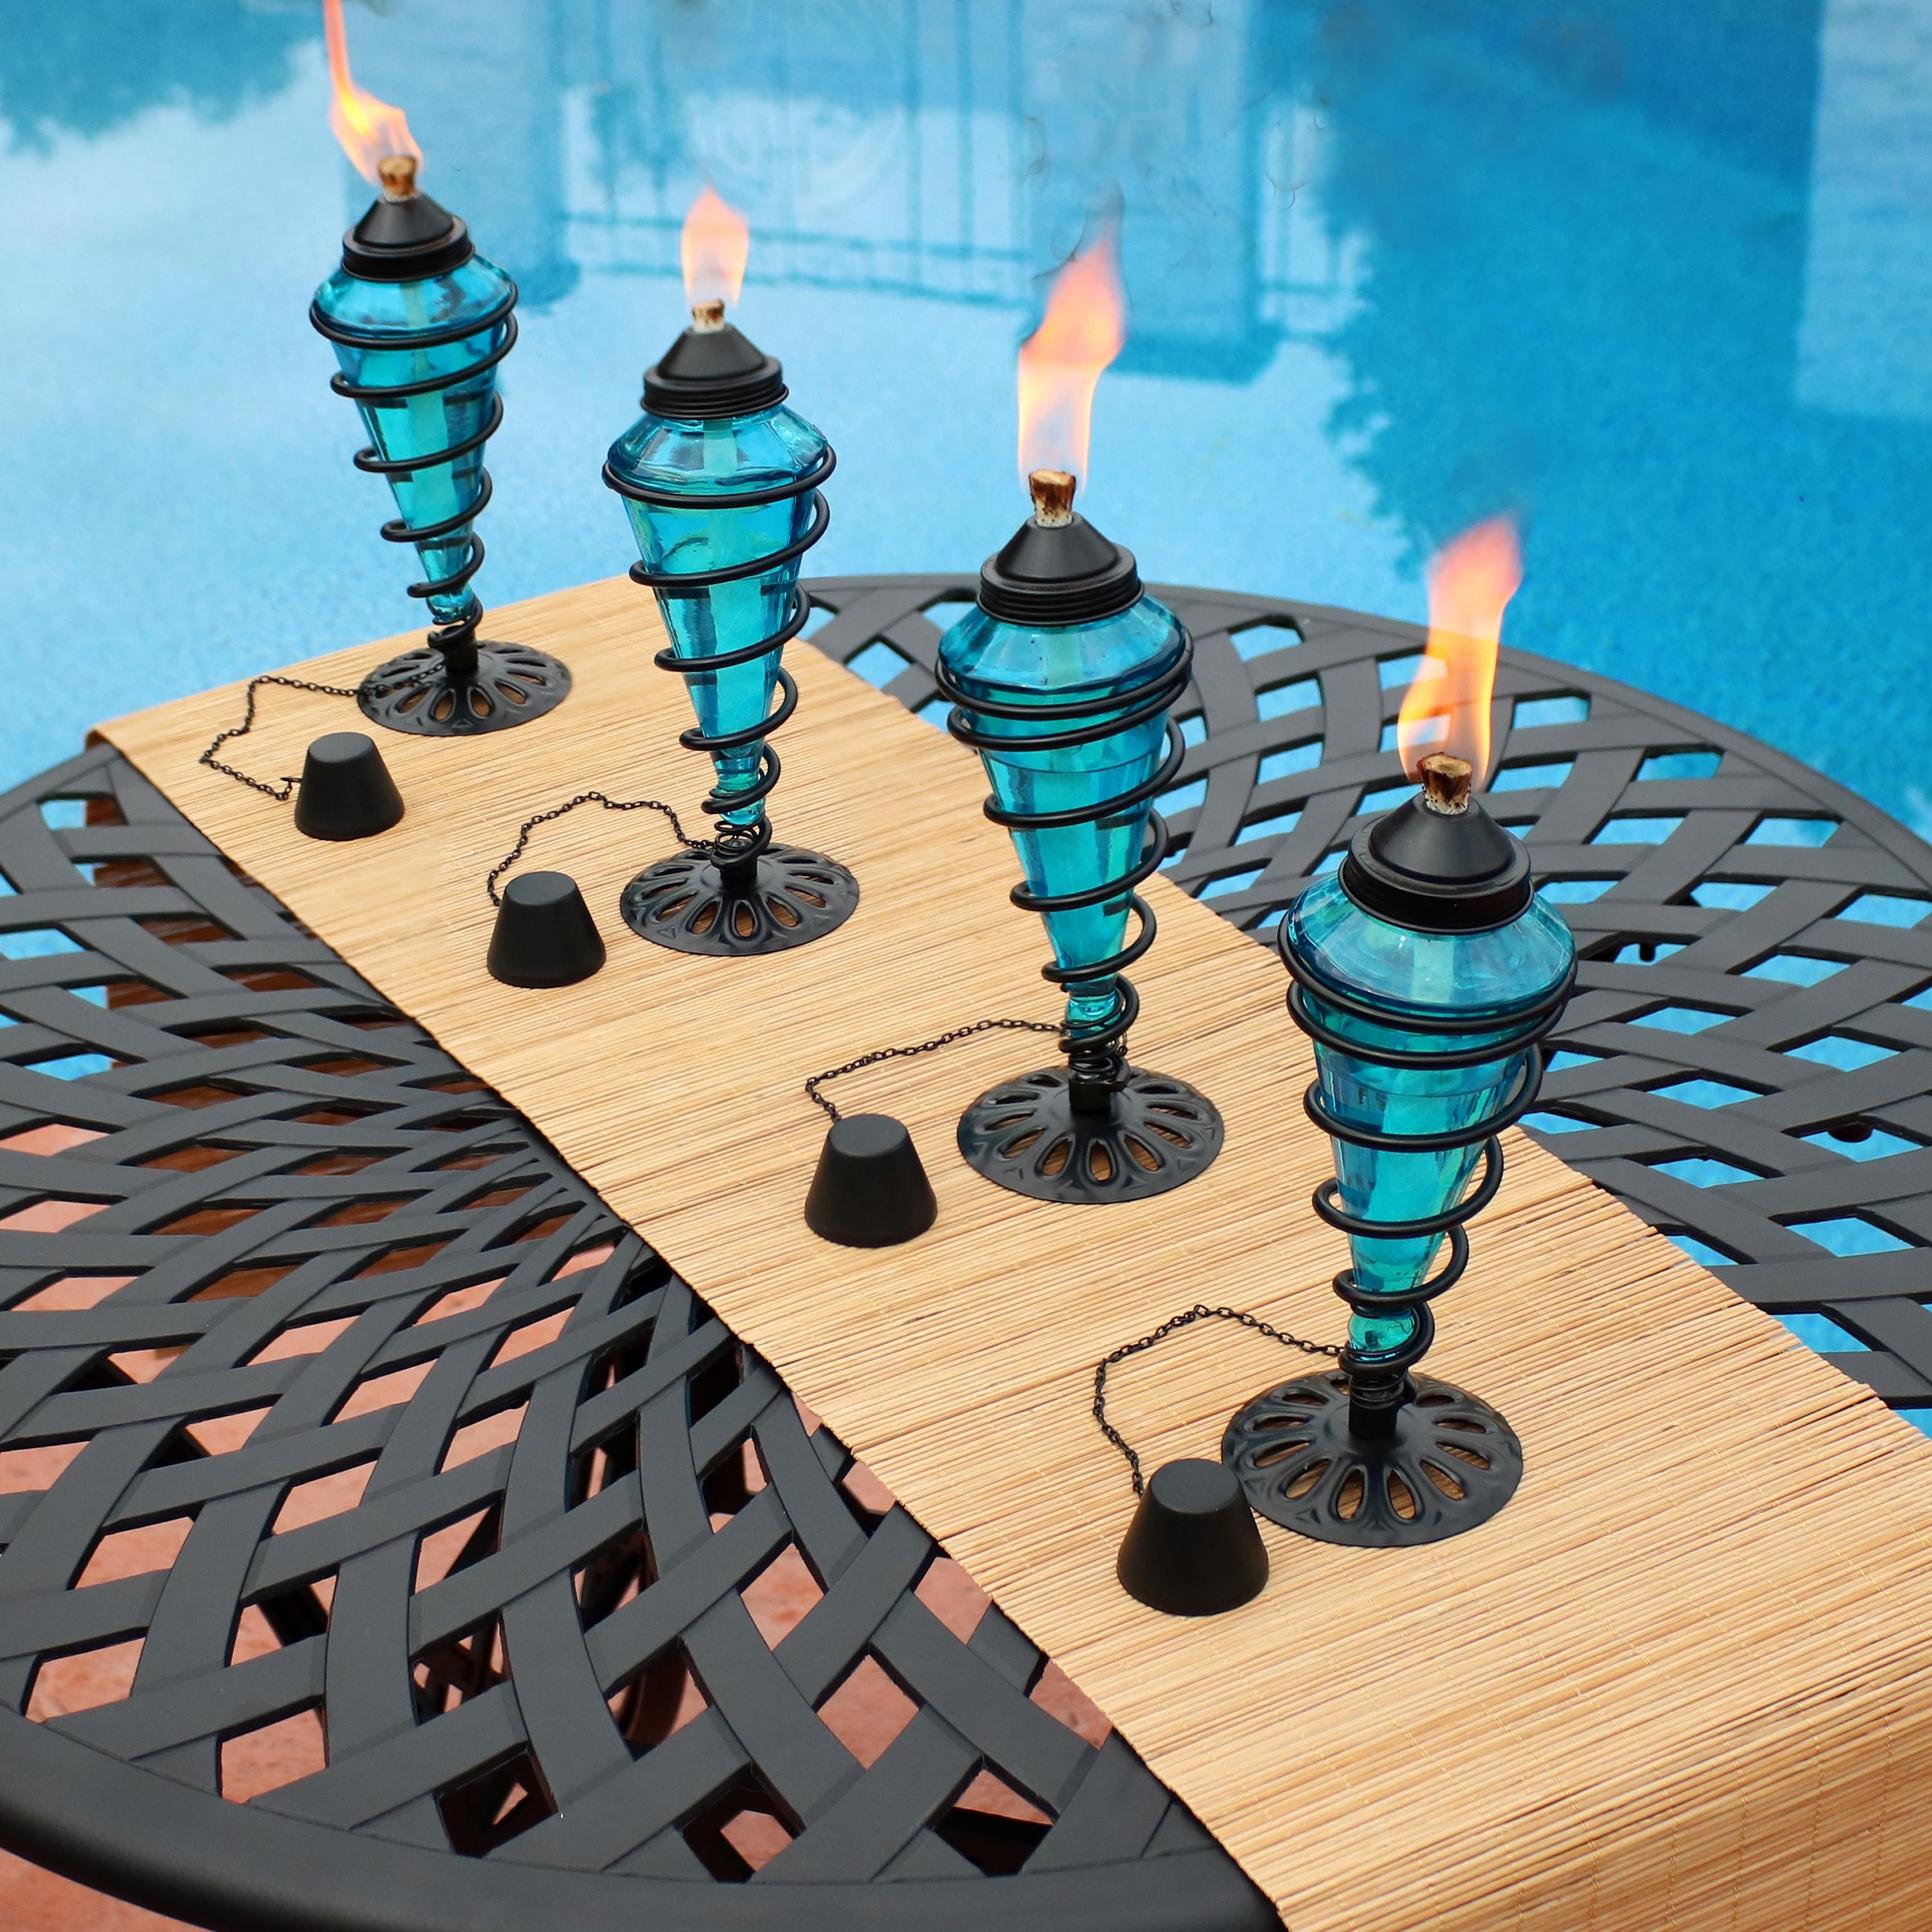 Set of 4 Sunnydaze Blue Glass Outdoor Tabletop Torches Citronella Torch